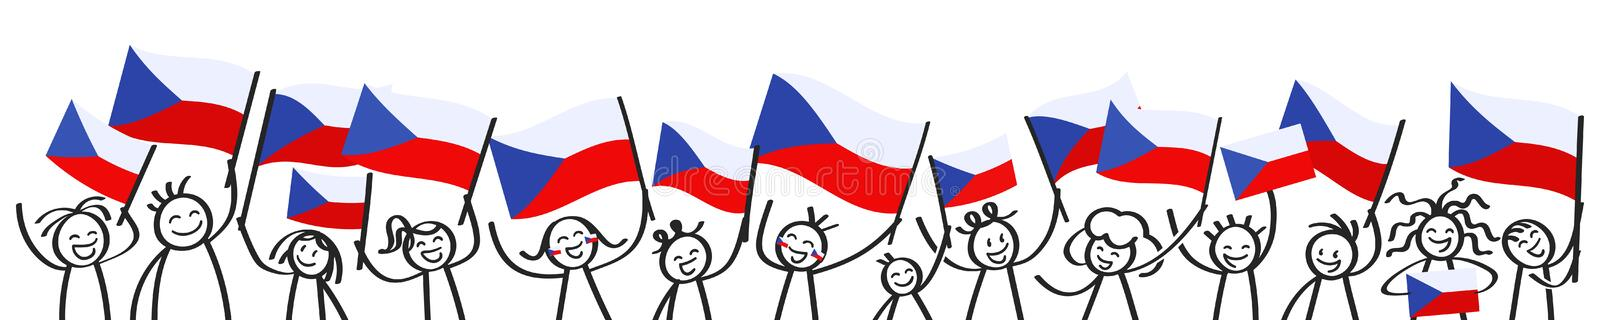 Cheering crowd of happy stick figures with Czech national flags, smiling Czech Republic supporters, sports fans stock illustration